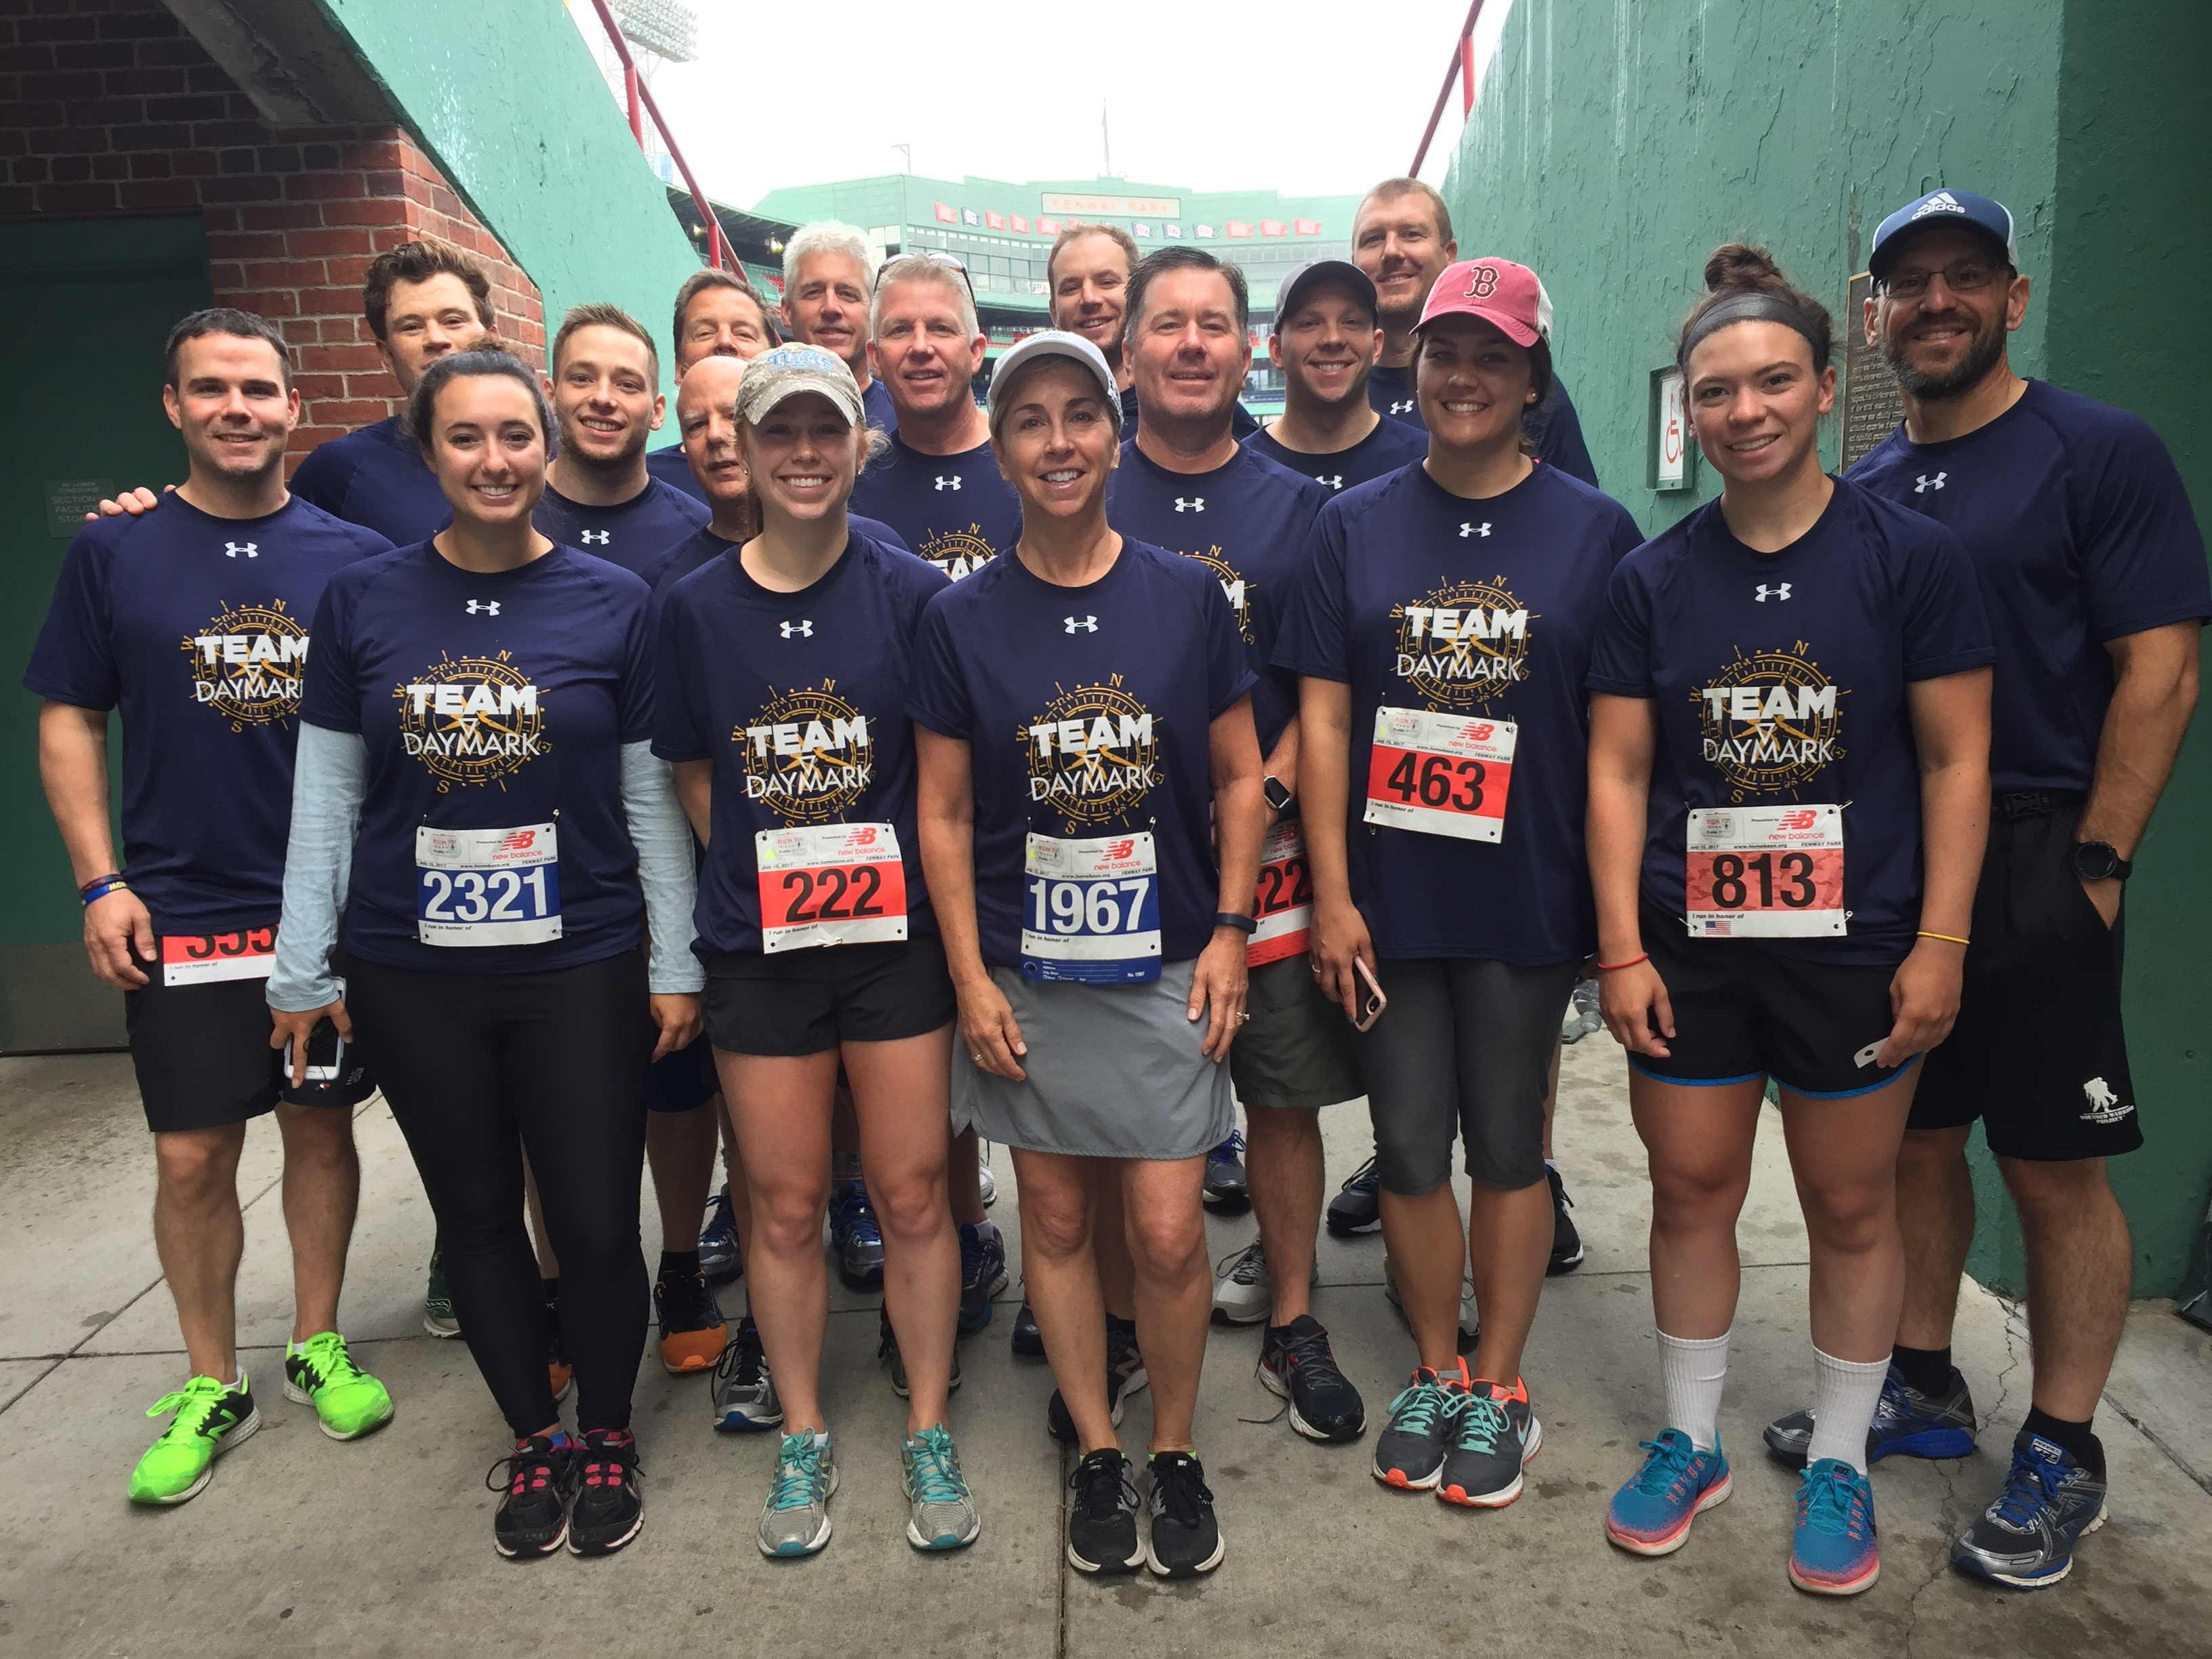 Team Daymark 2017.jpg>                                     </a>                                 </div>                                                          <html>  <head></head>  <body>   <p><strong>Lexington, MA, July 17, 2017 </strong>– For the 8th straight year, Daymark employees and their families supported&nbsp;<a href=